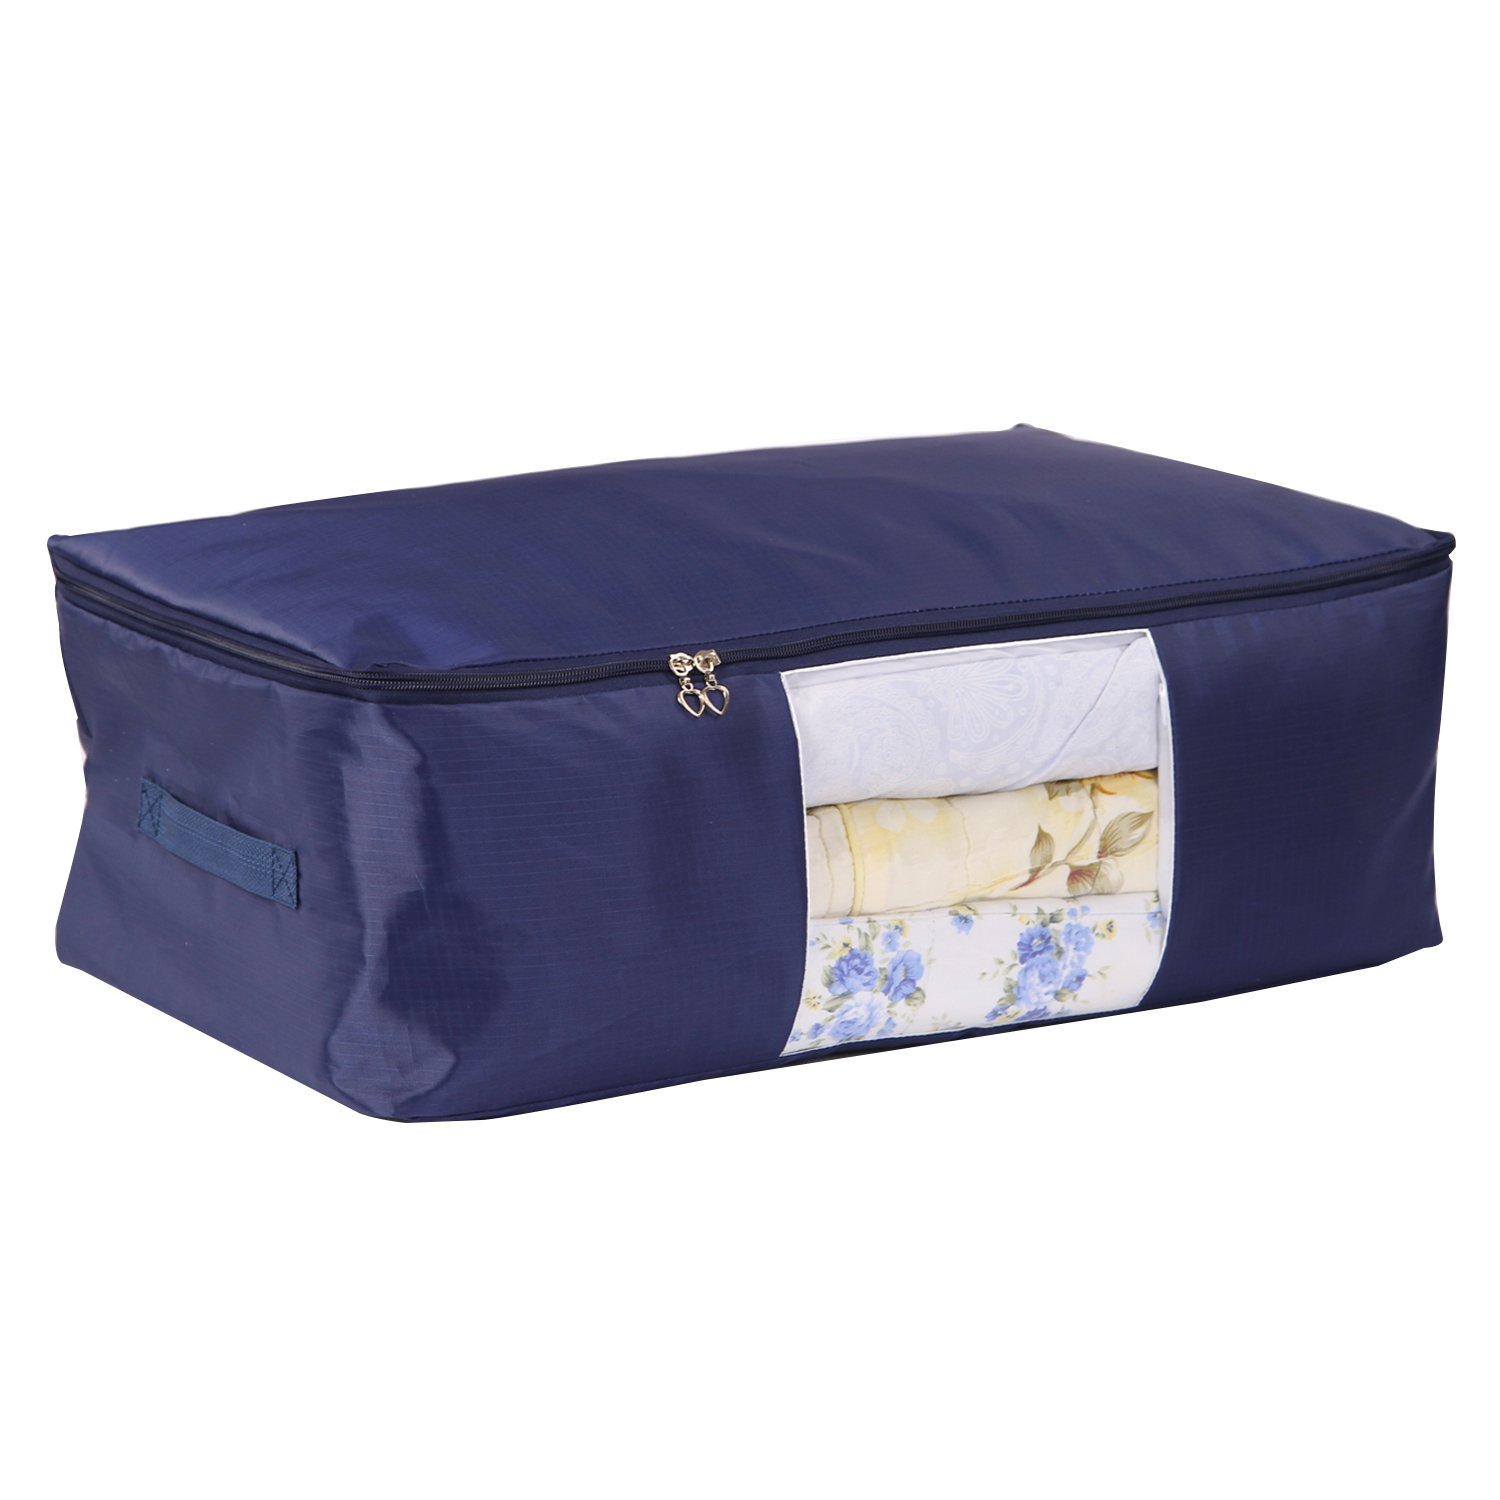 c2f2a64555e5 Cheap Comforter Storage Bags Cotton, find Comforter Storage Bags ...